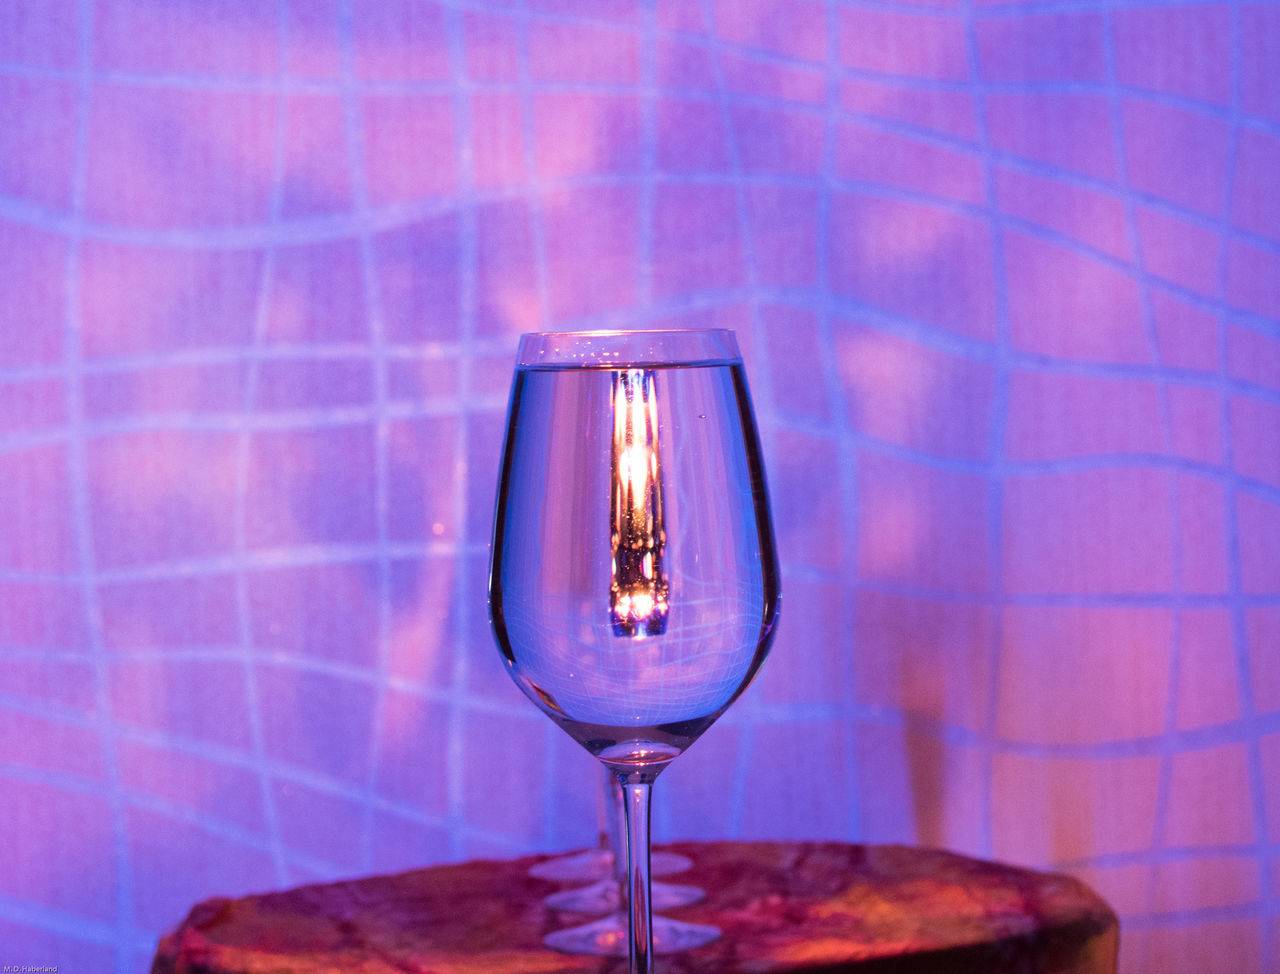 Illuminated No People Indoors  Candle Waterglass Mirrored Blacklight Candle Light EyeEmNewHere